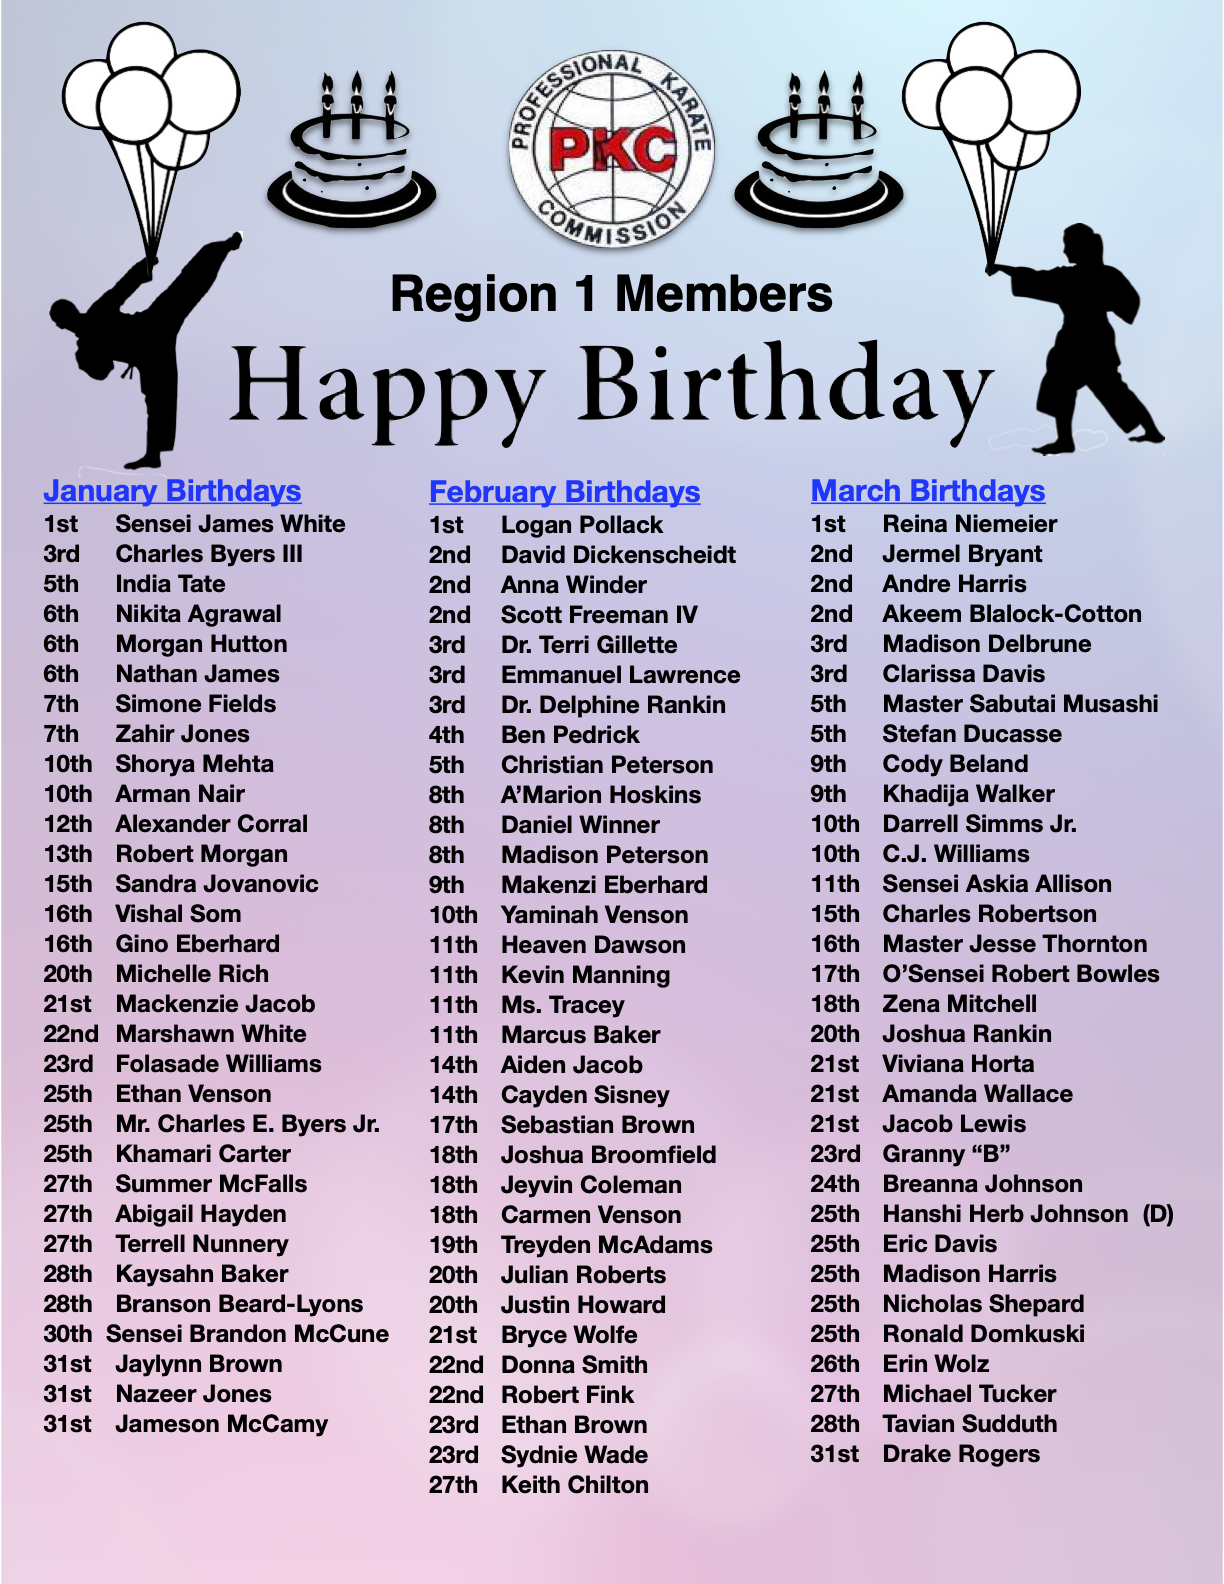 Birthdays - Region 1 Jan. Feb. Mar.